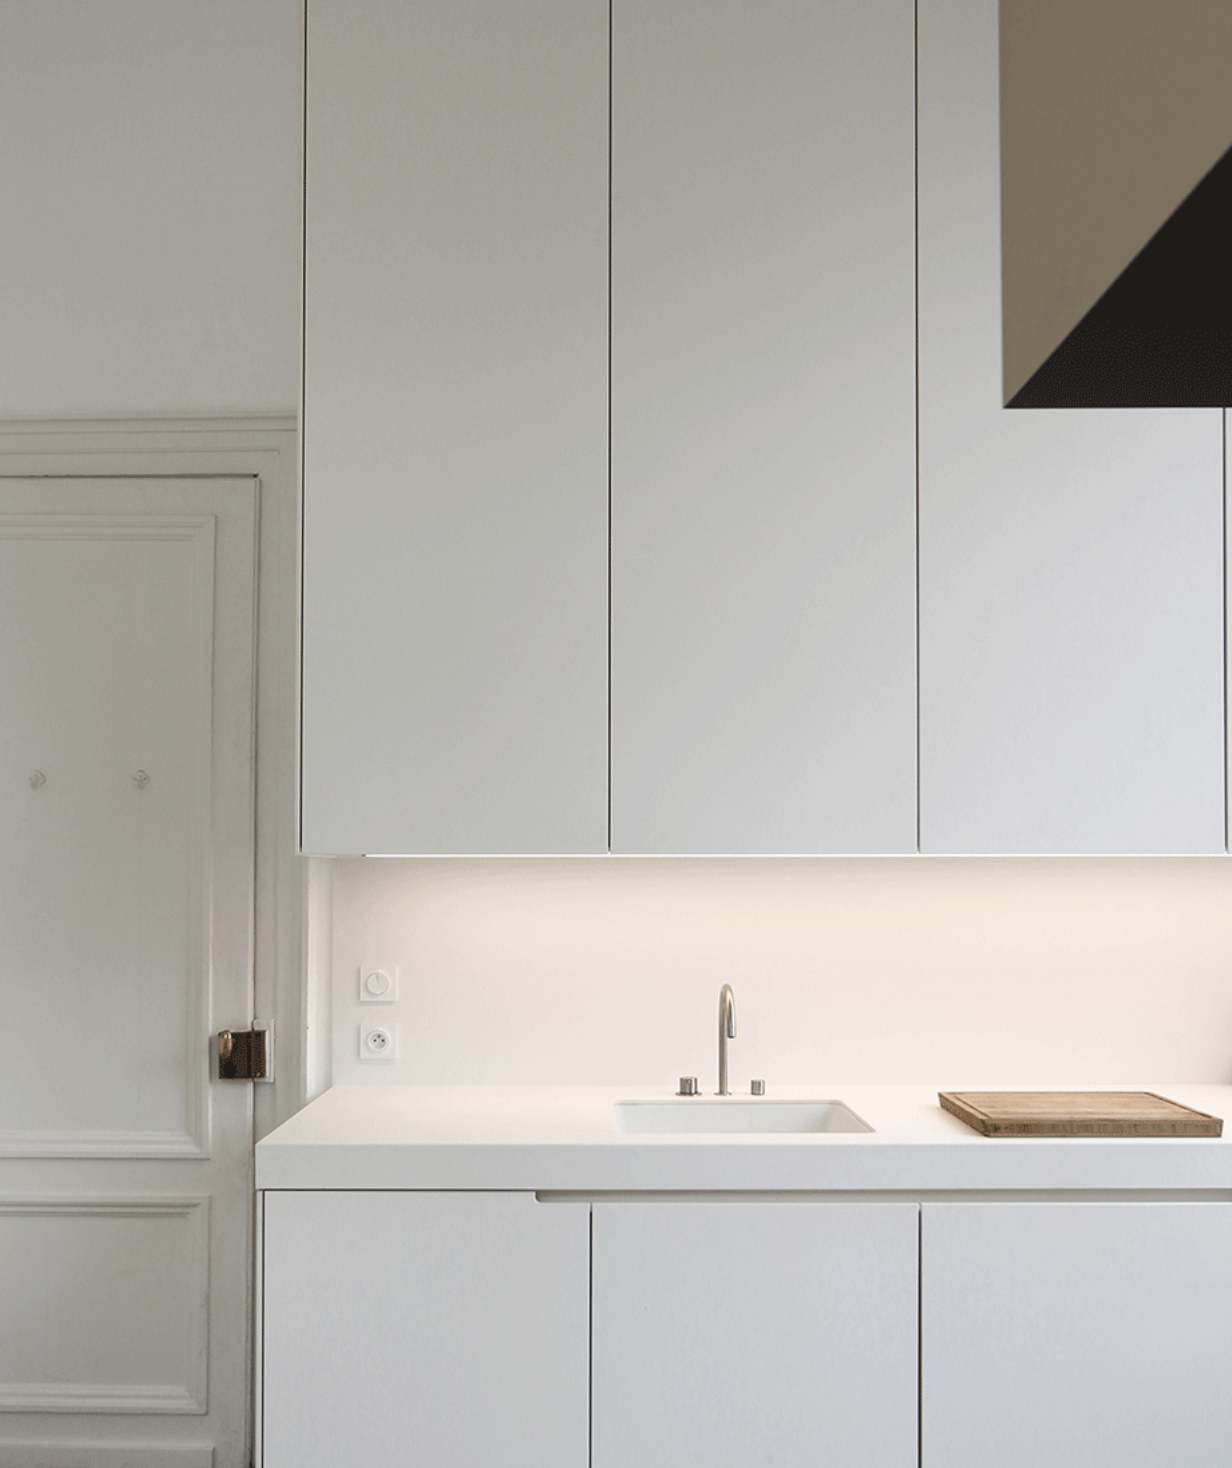 Create A Stylish Minimalistic Look Using The Sleek Vola 590h One Handle Mixer Vola Kitchend In 2020 Scandinavian Kitchen Design Scandinavian Kitchen Chrome Kitchen